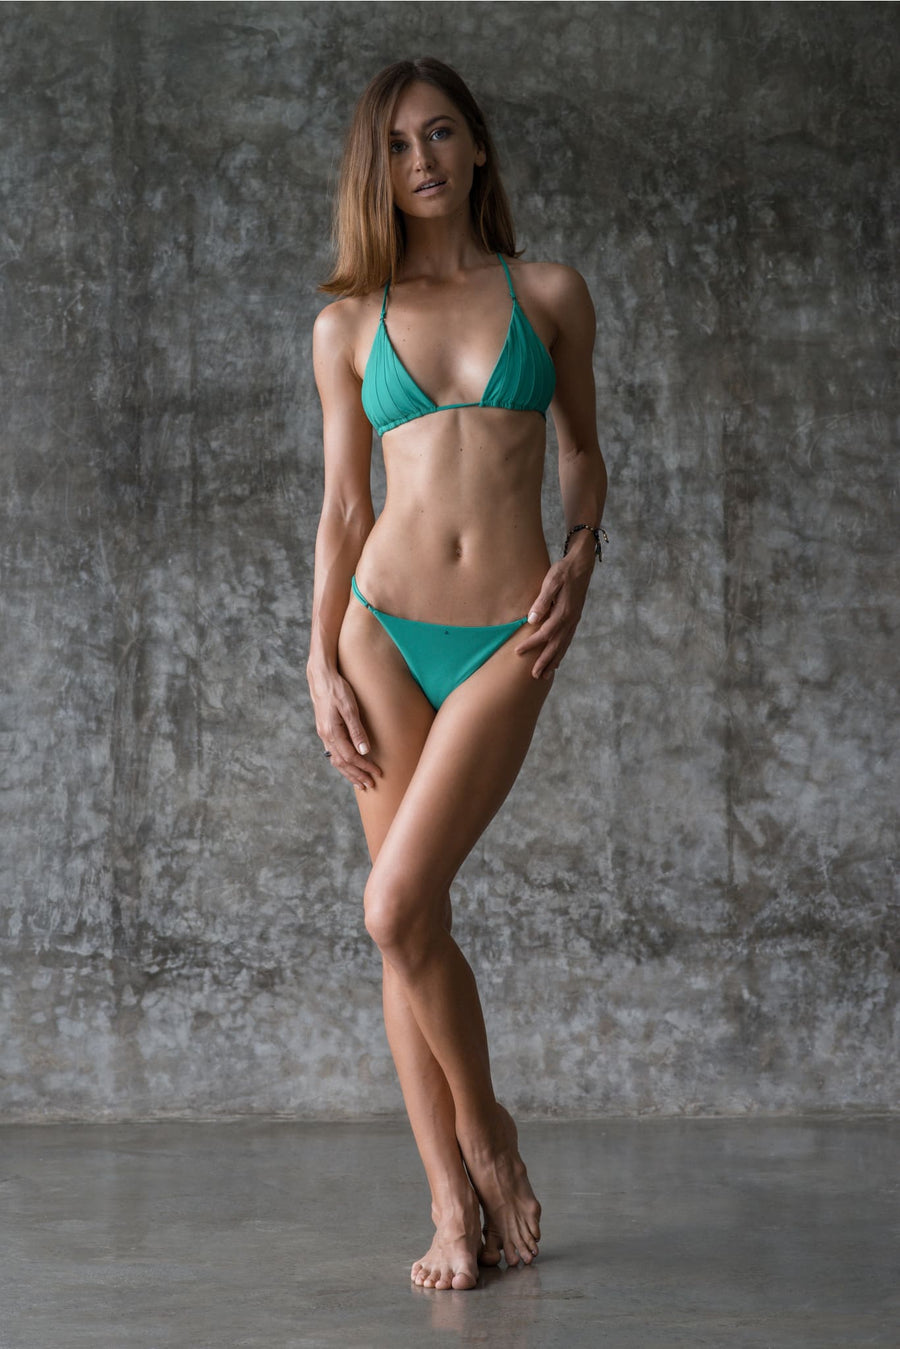 SIMONE TOP | ENVY GREEN - seamoneswimwear